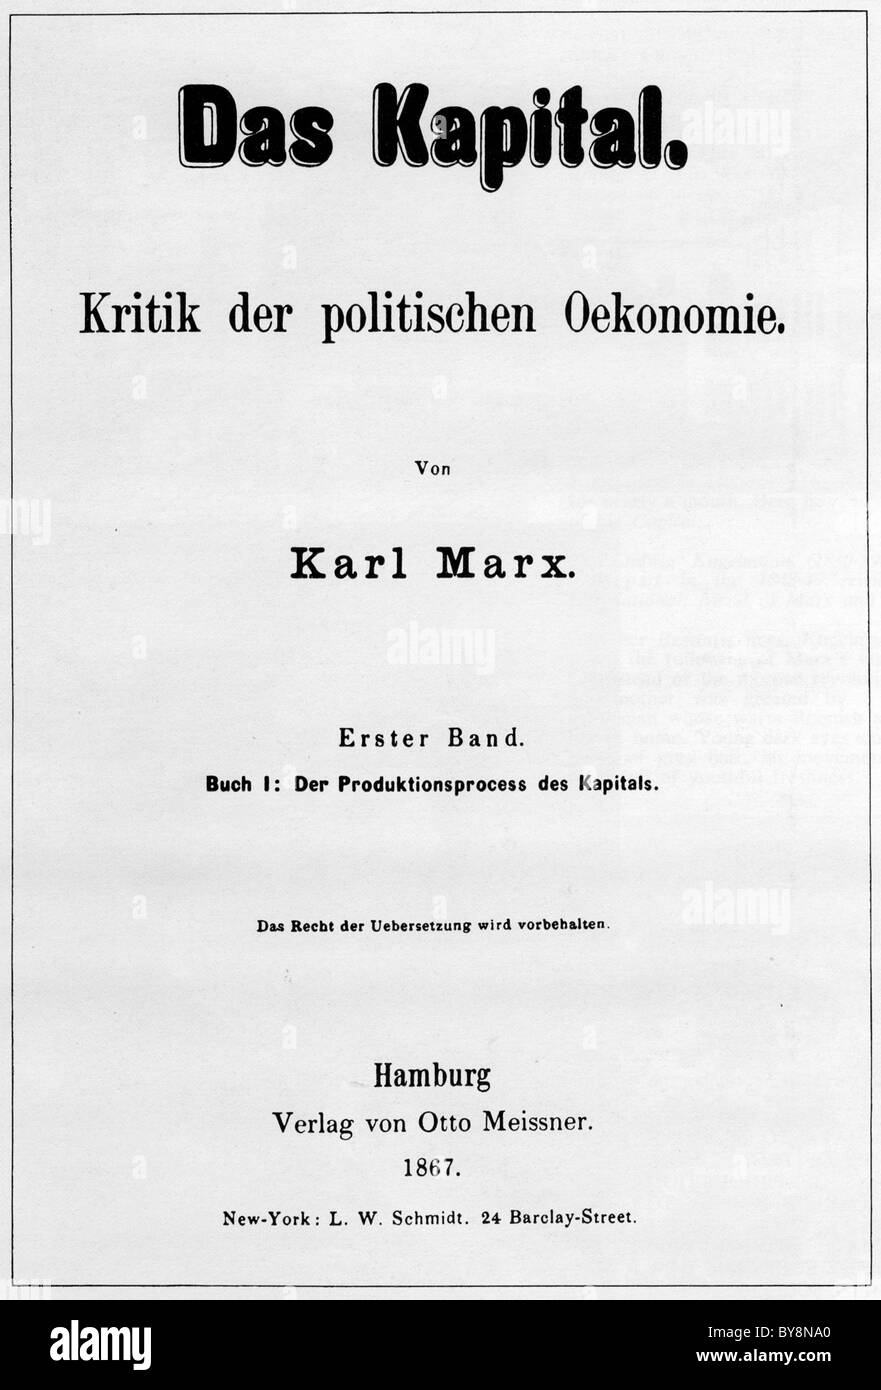 DAS KAPITAL Title page of the first volume of Karl Marx's  critique of capitalism published in Hamburg in 1867 - Stock Image